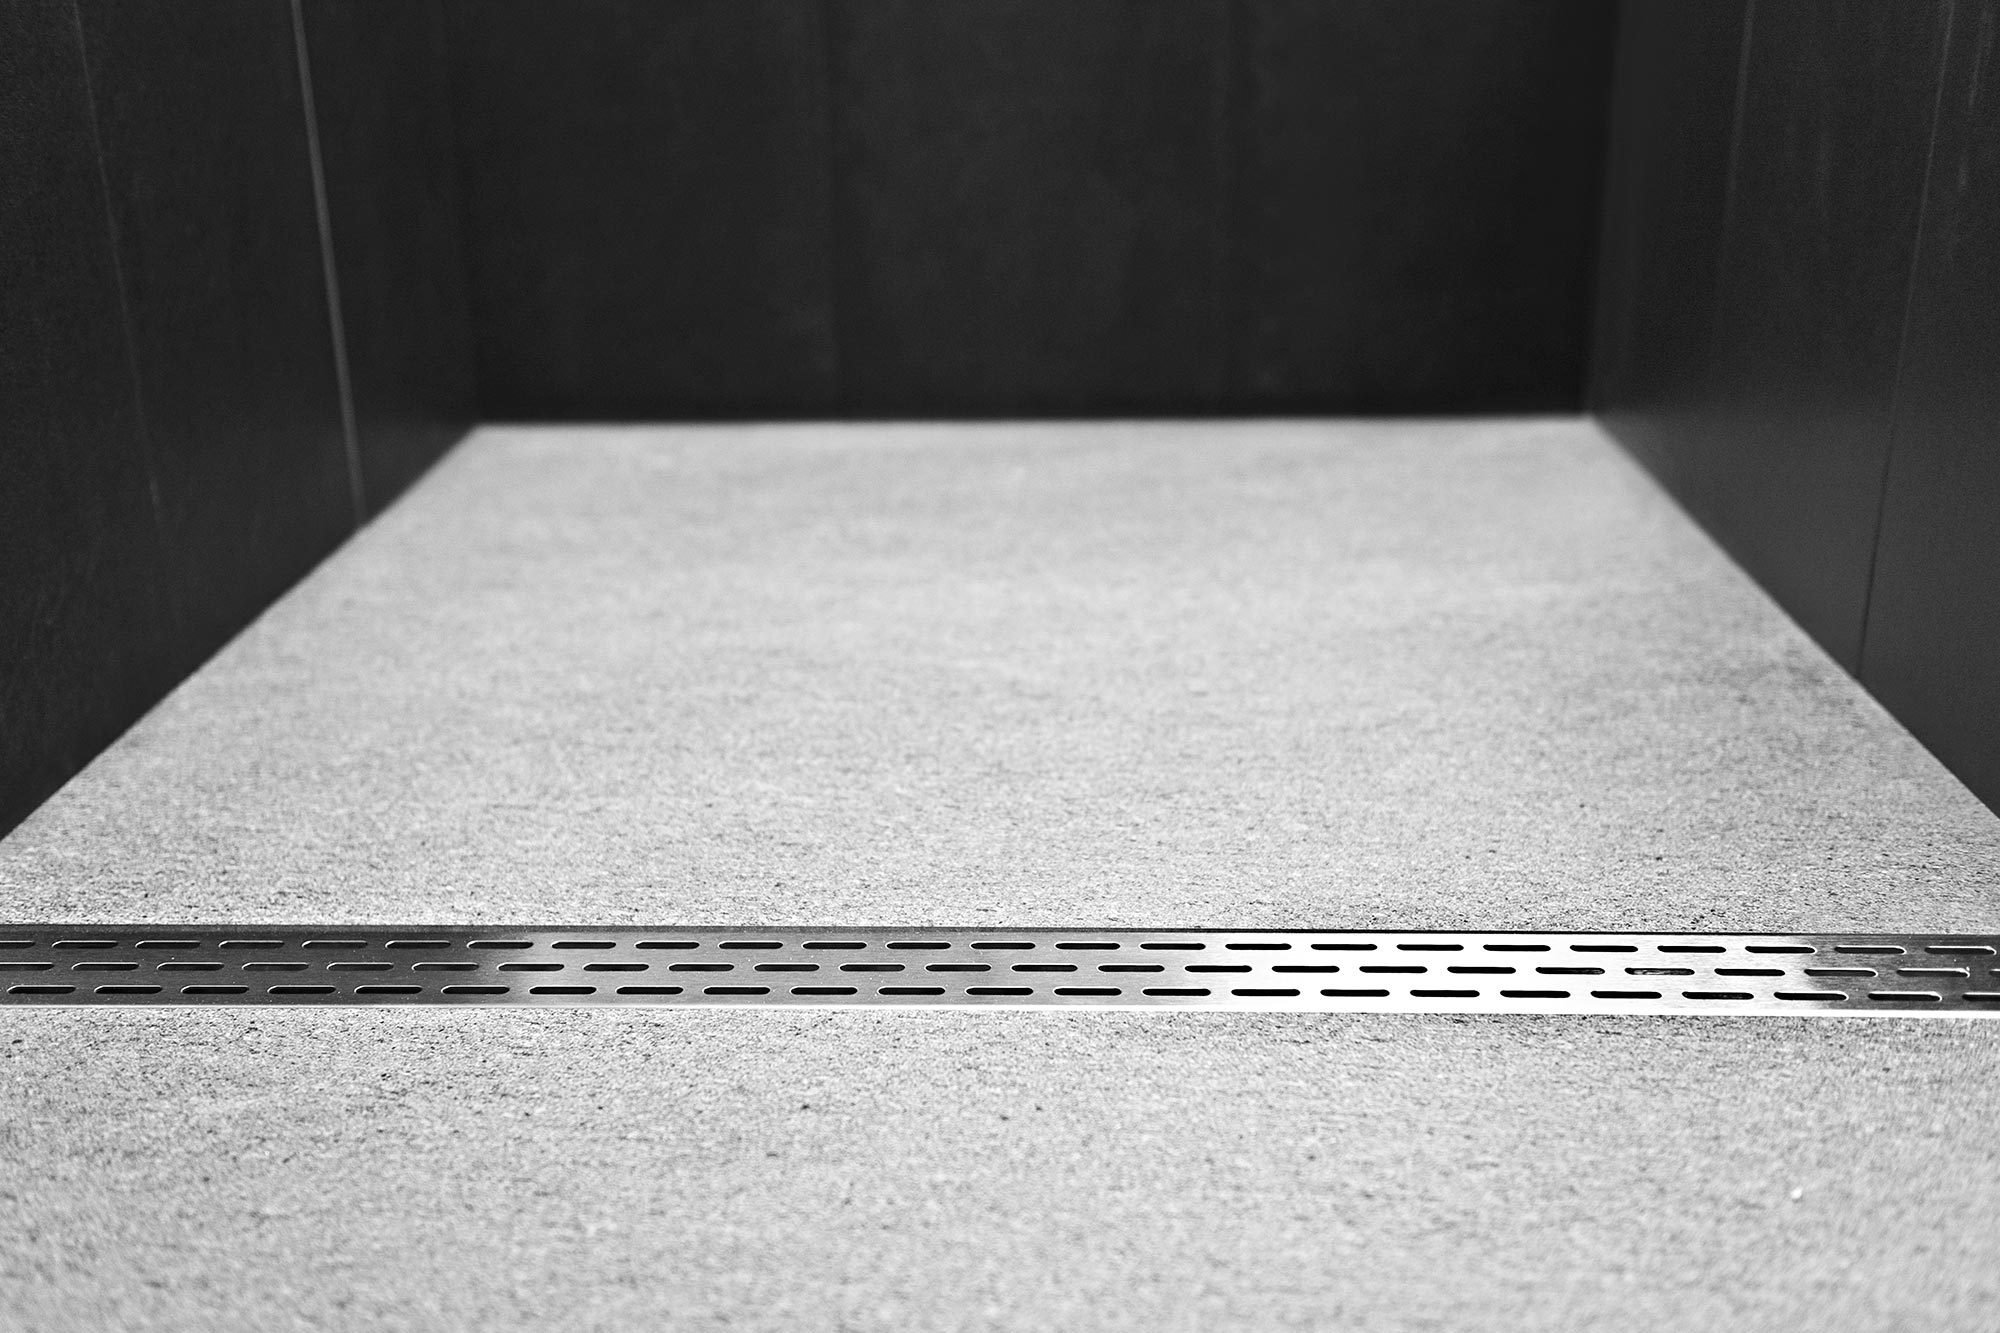 Infinity Drain's Guide to Linear Drain Grate Styles